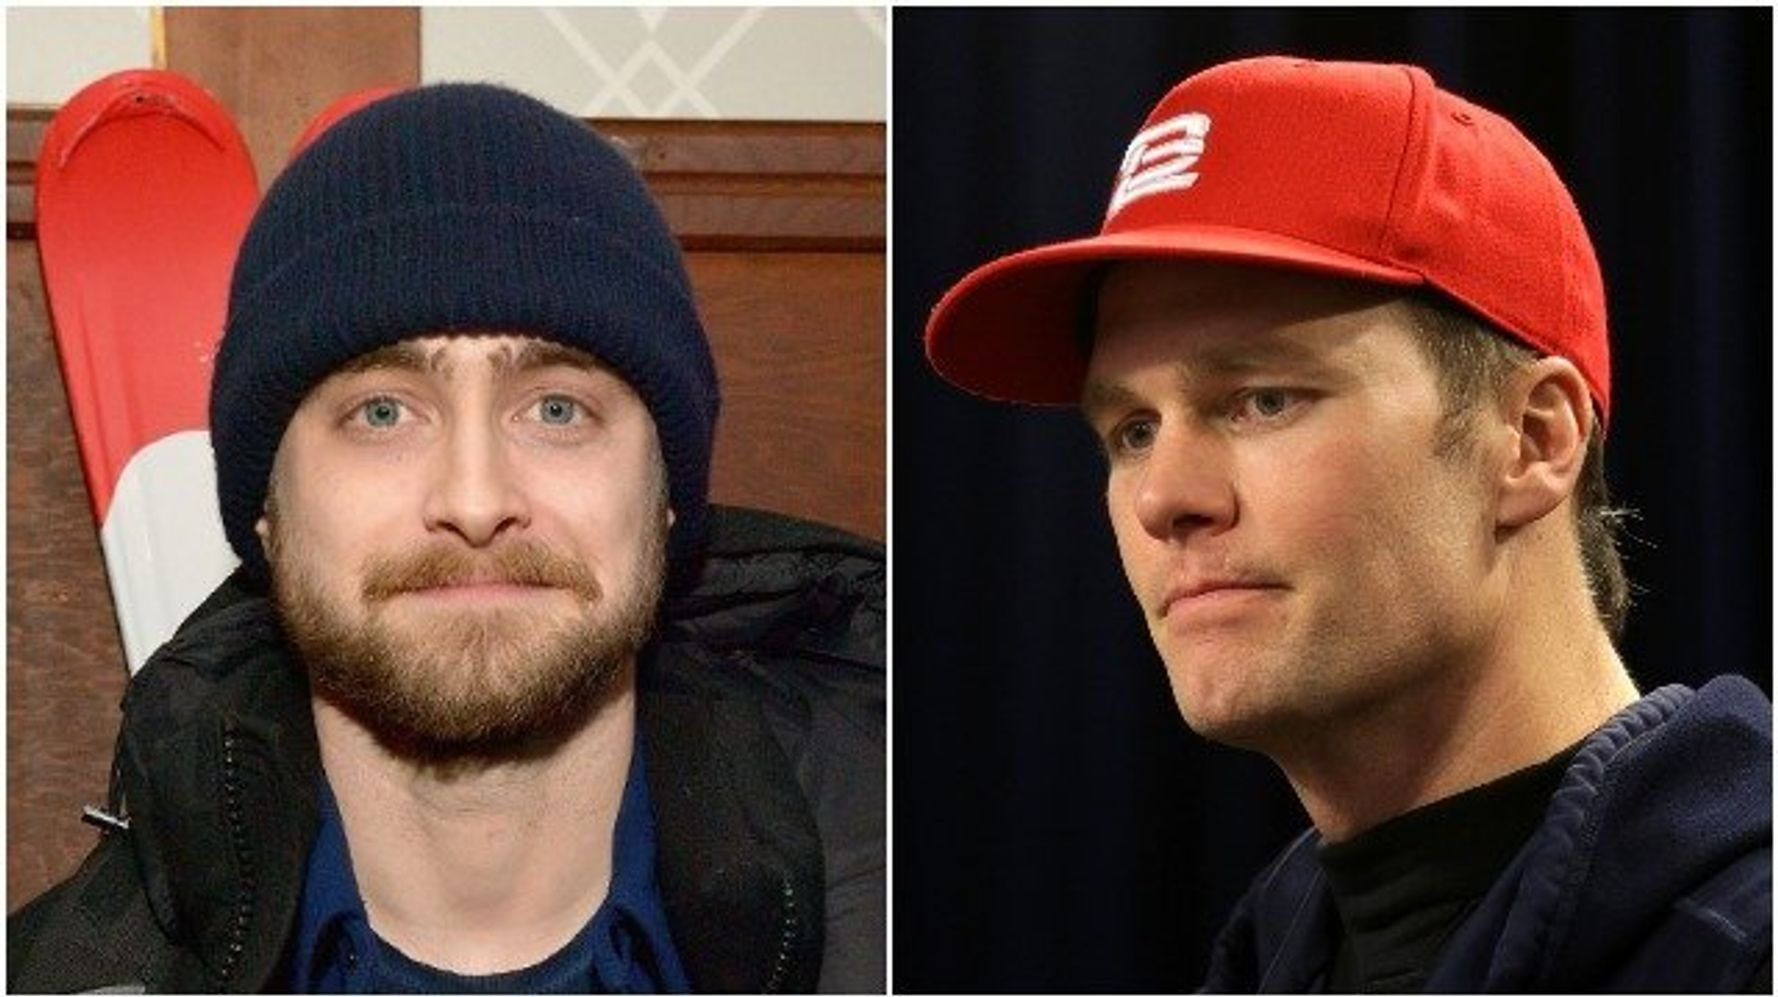 e2a17890 Daniel Radcliffe Rips Tom Brady's MAGA Hat, Says He's Backing Rams ...